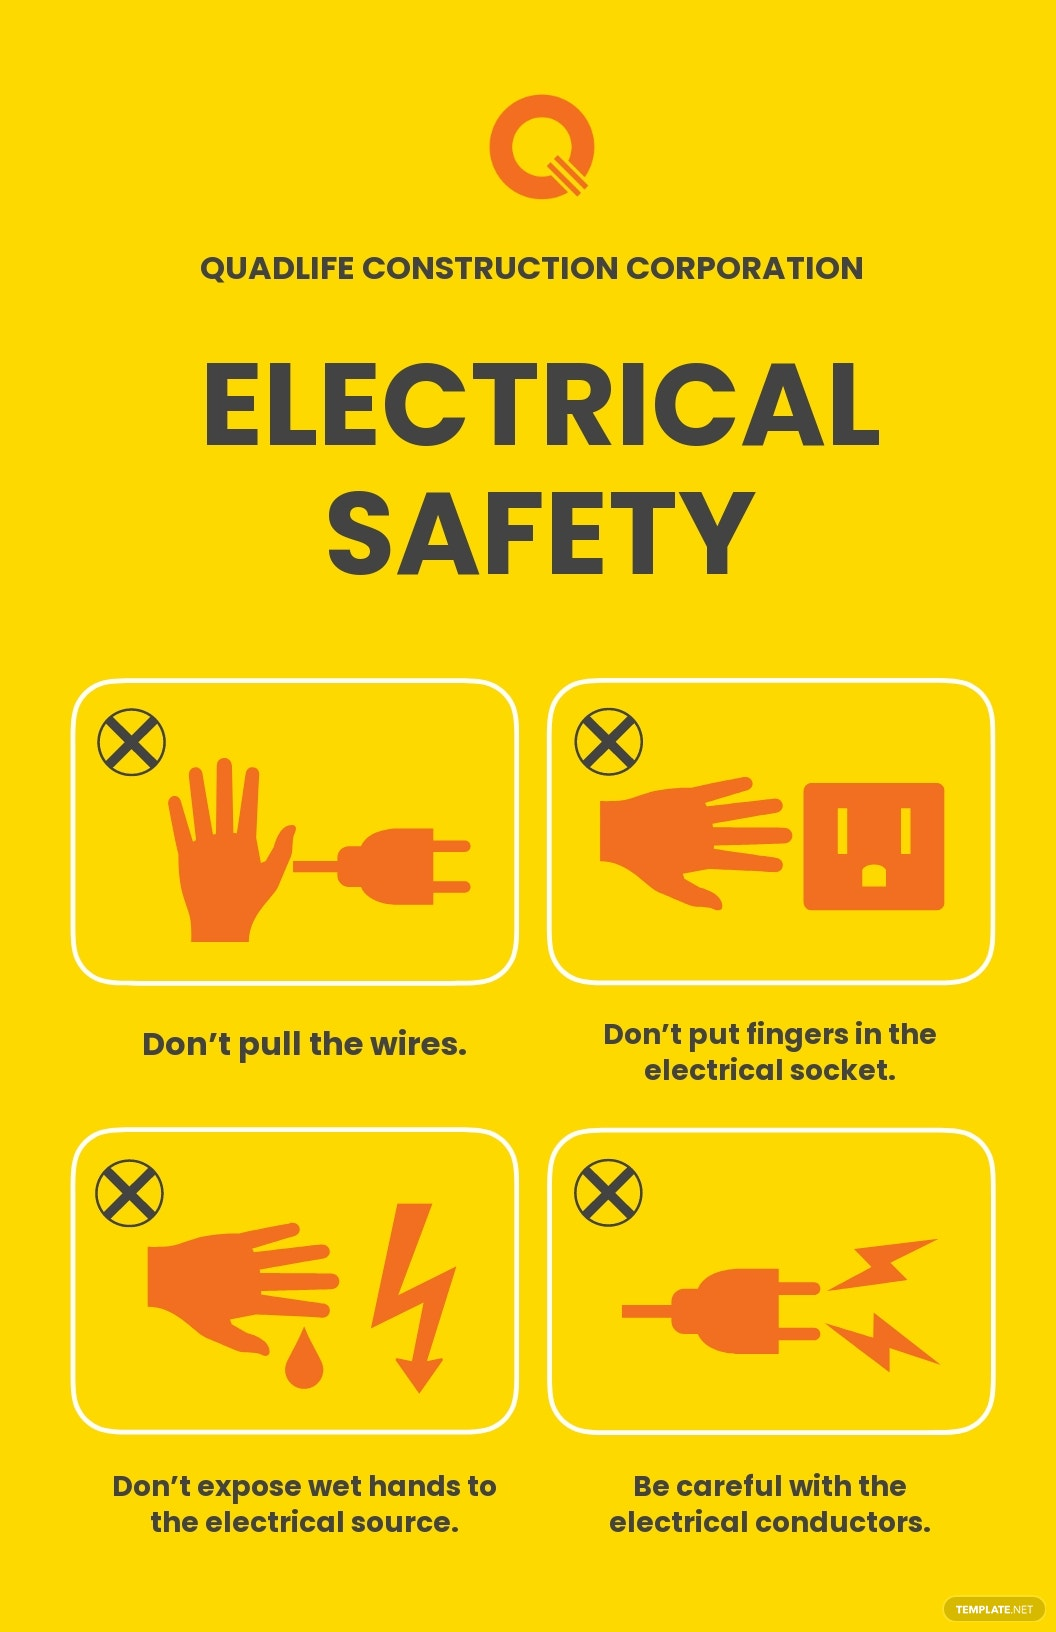 Electrical Safety Poster Template [Free JPG] - Illustrator, InDesign, Word, Apple Pages, PSD